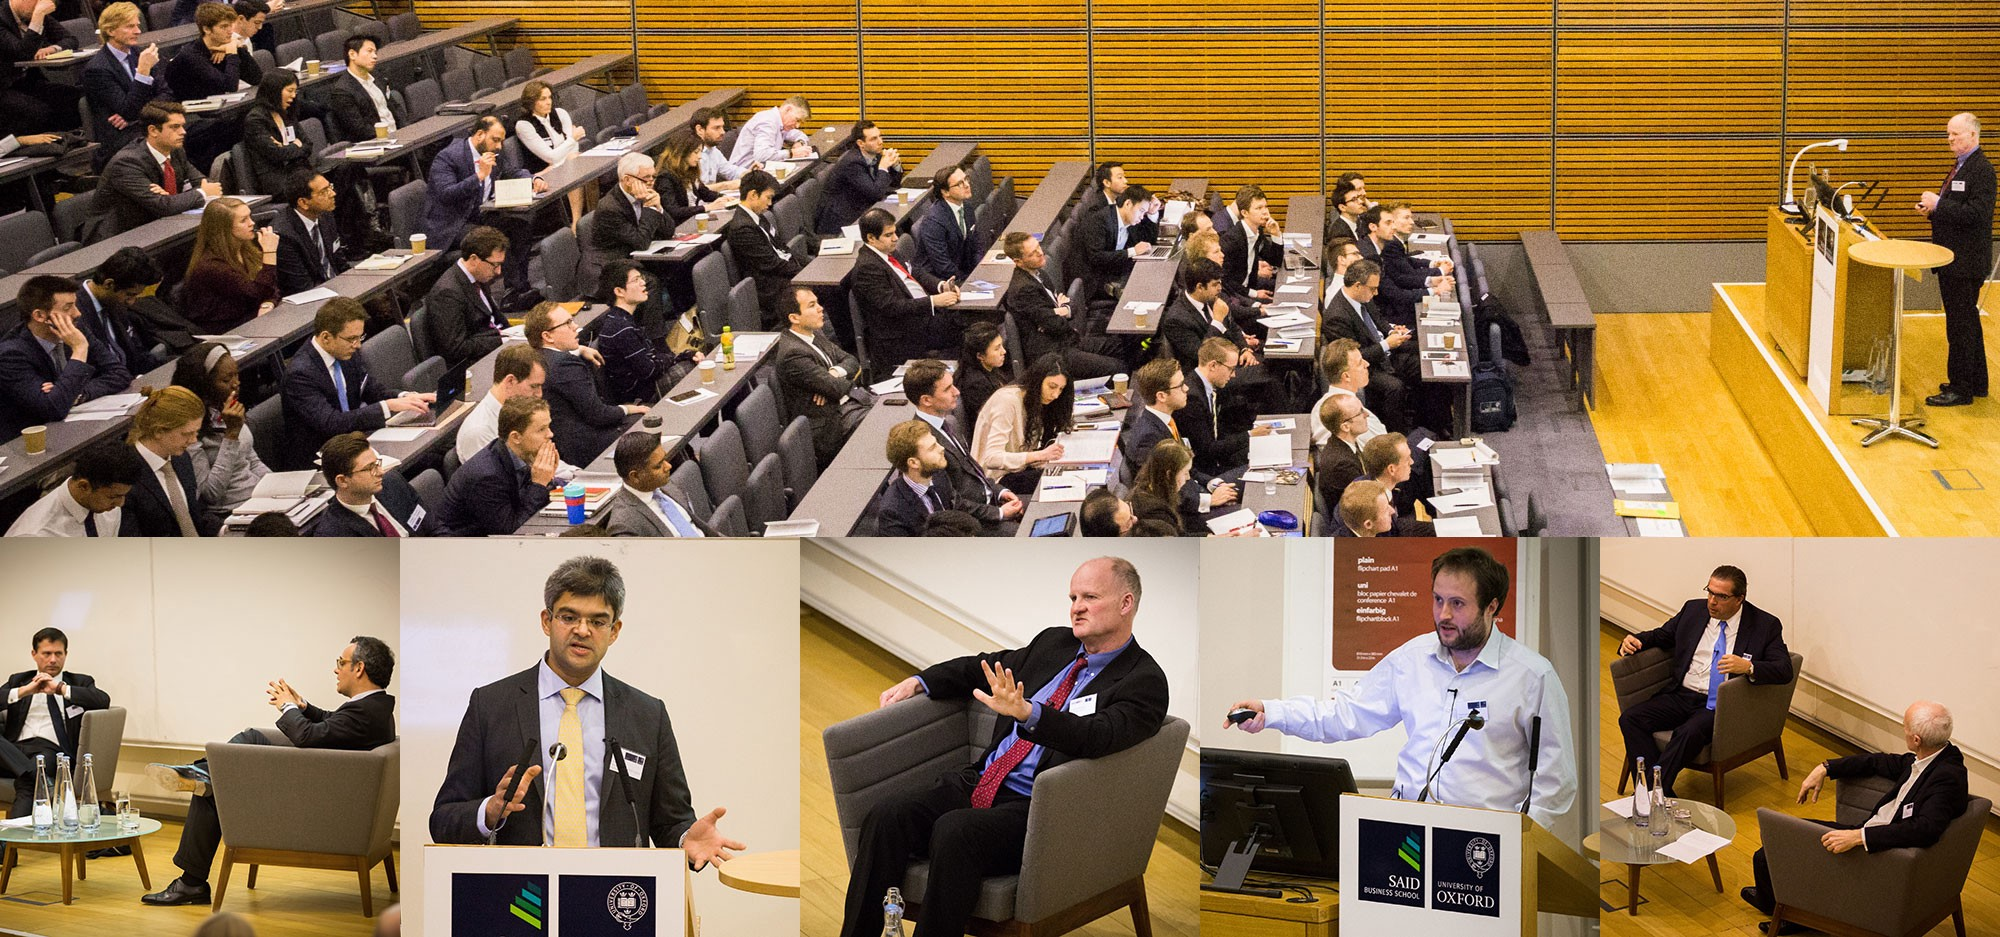 the weekend also included lectures and seminars from experts which focused on subjects such as acquisition finance modelling and lbo acquisition